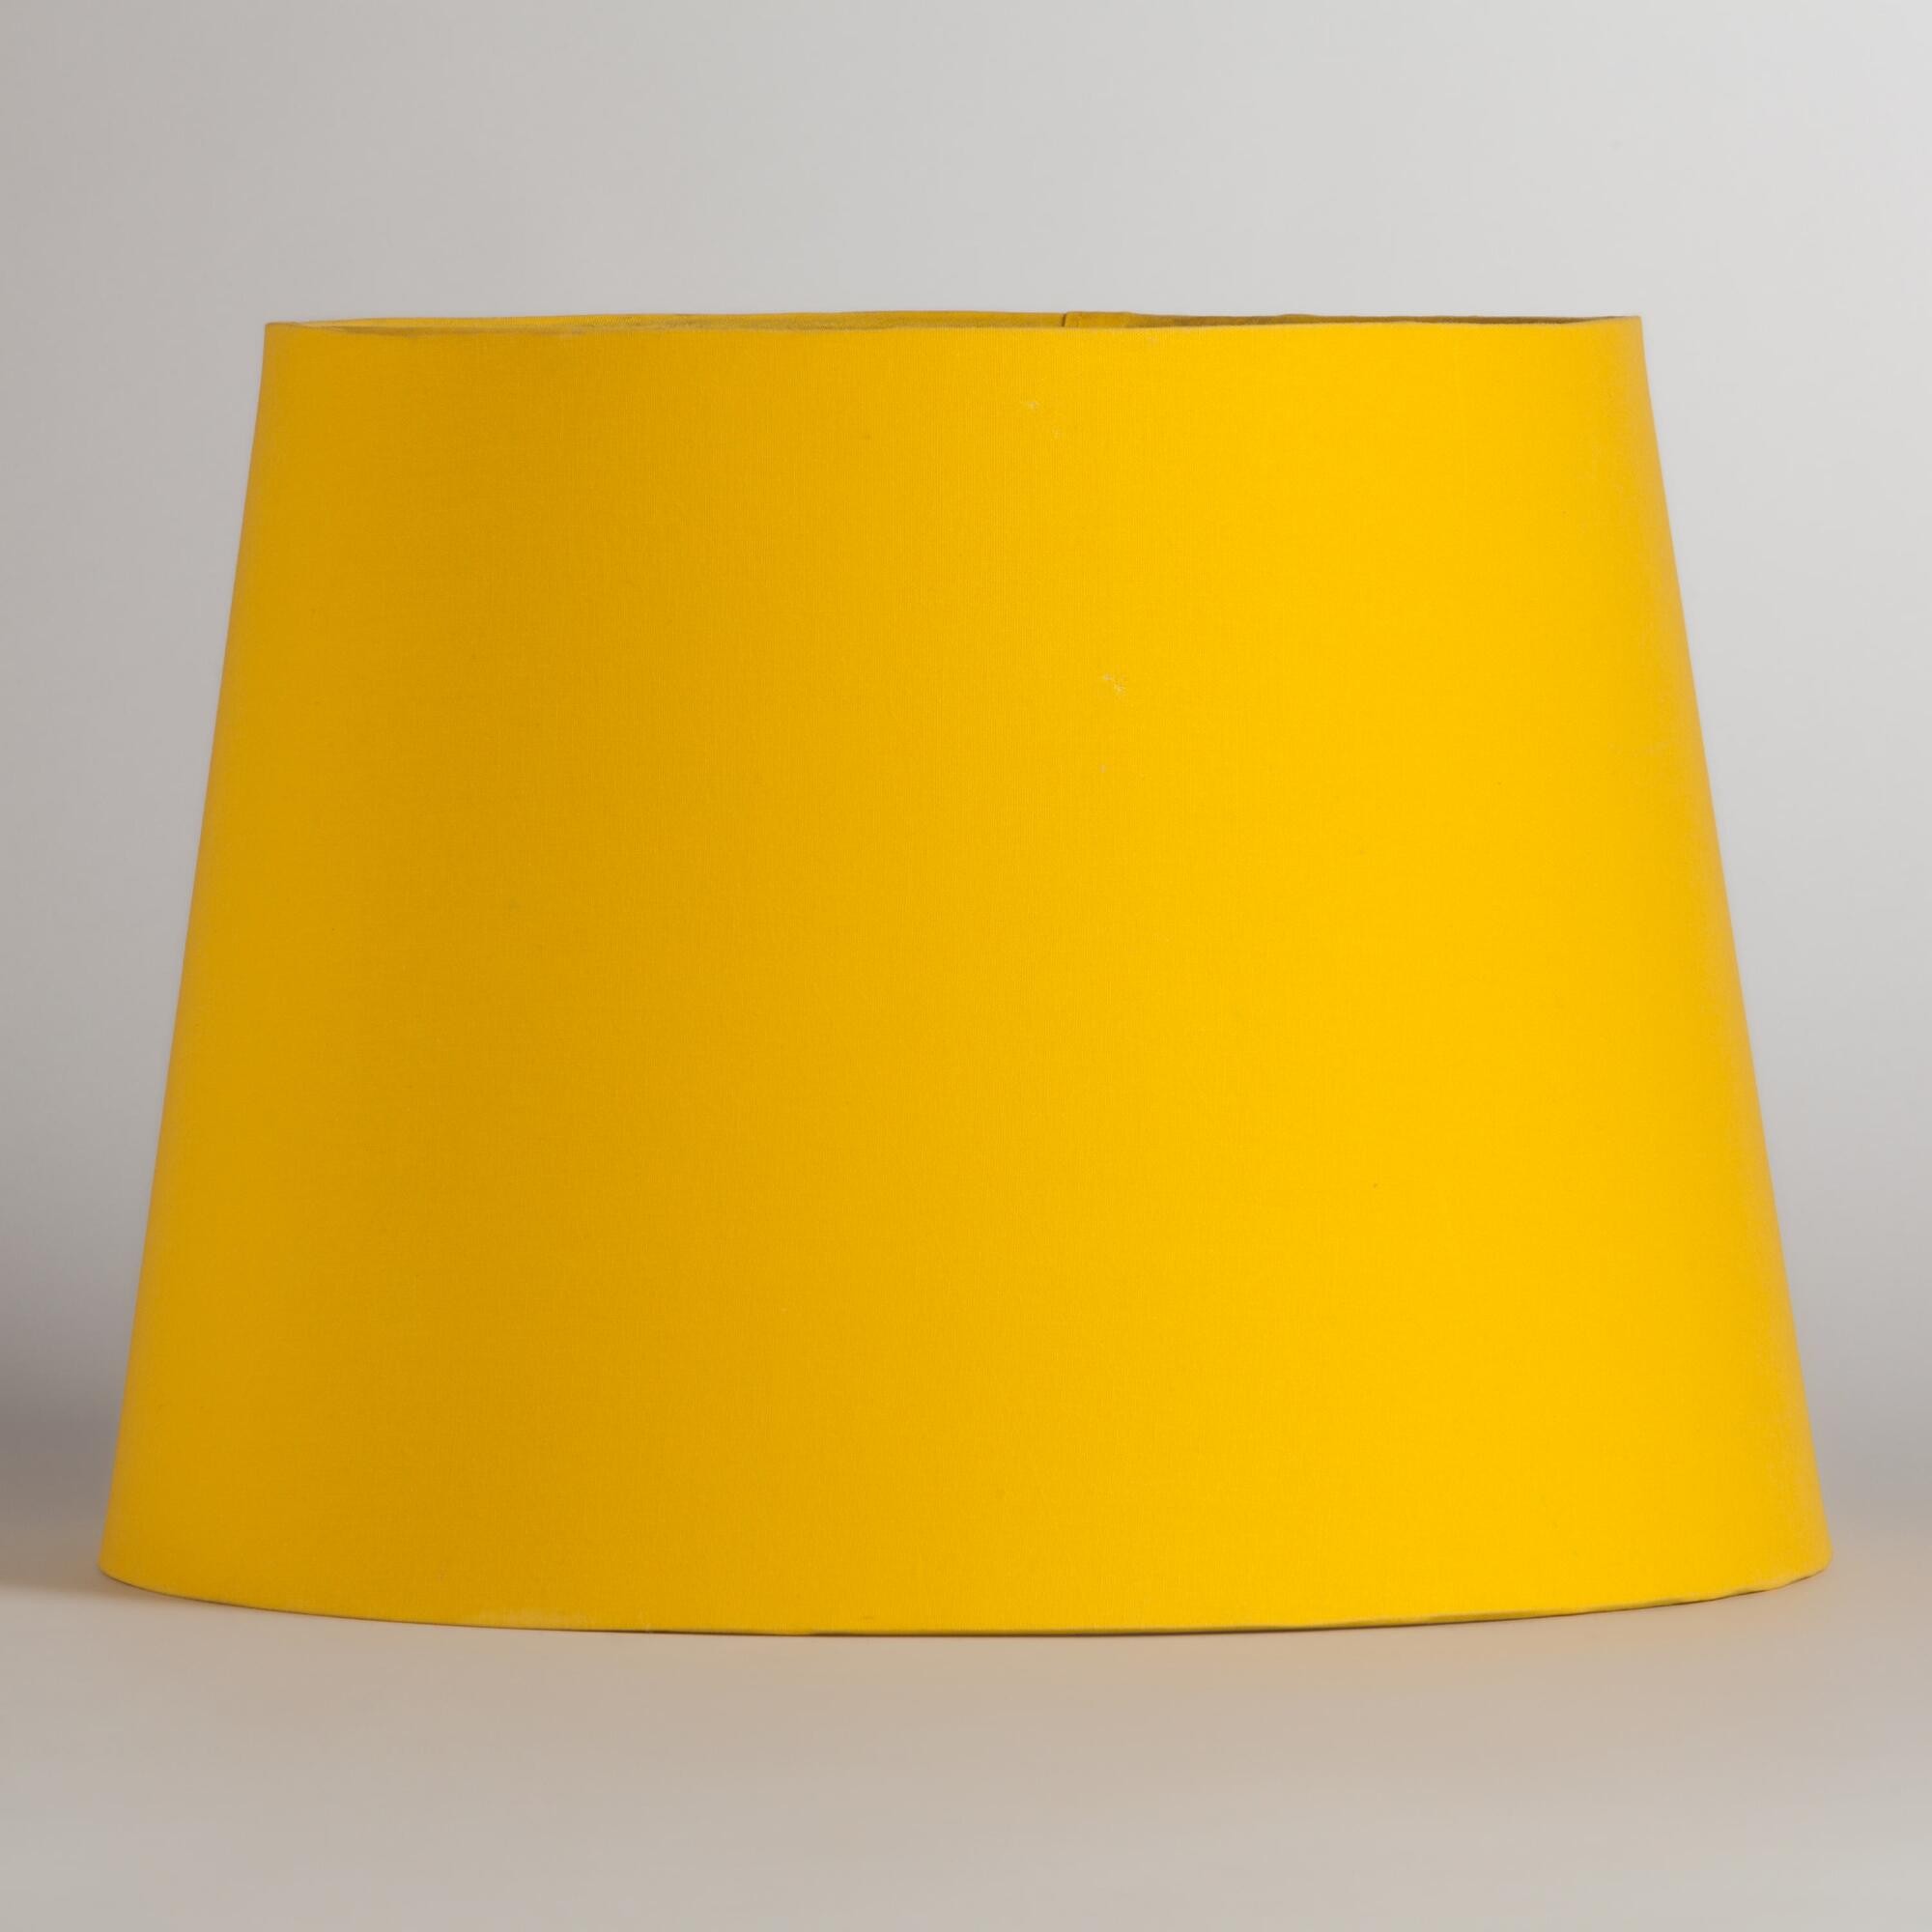 Yellow Lamp Shade Quotes